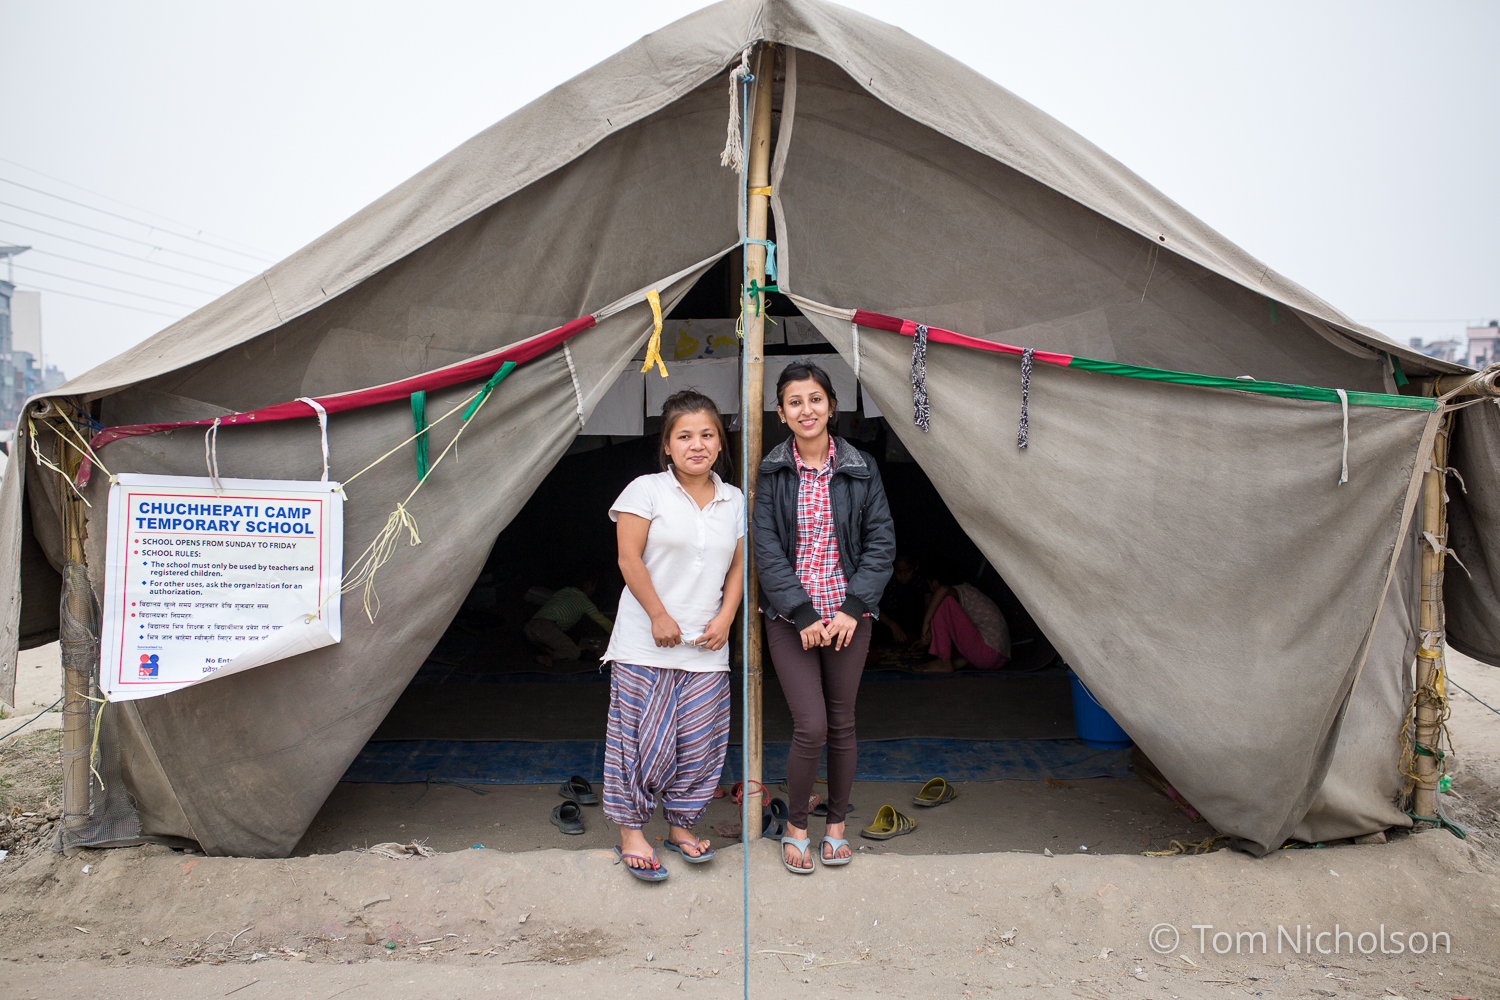 School teachers Binita Rai (left) and Bidhya Khatri at their school called The Chuchepati Camp Temporary School, located in the Internally Displaced Person (IDP) camp in Chuchepati, Kathmandu City, Nepal on 27 March 2016. The camp houses people in temporary accomodation due to the April 2015 earthquake.